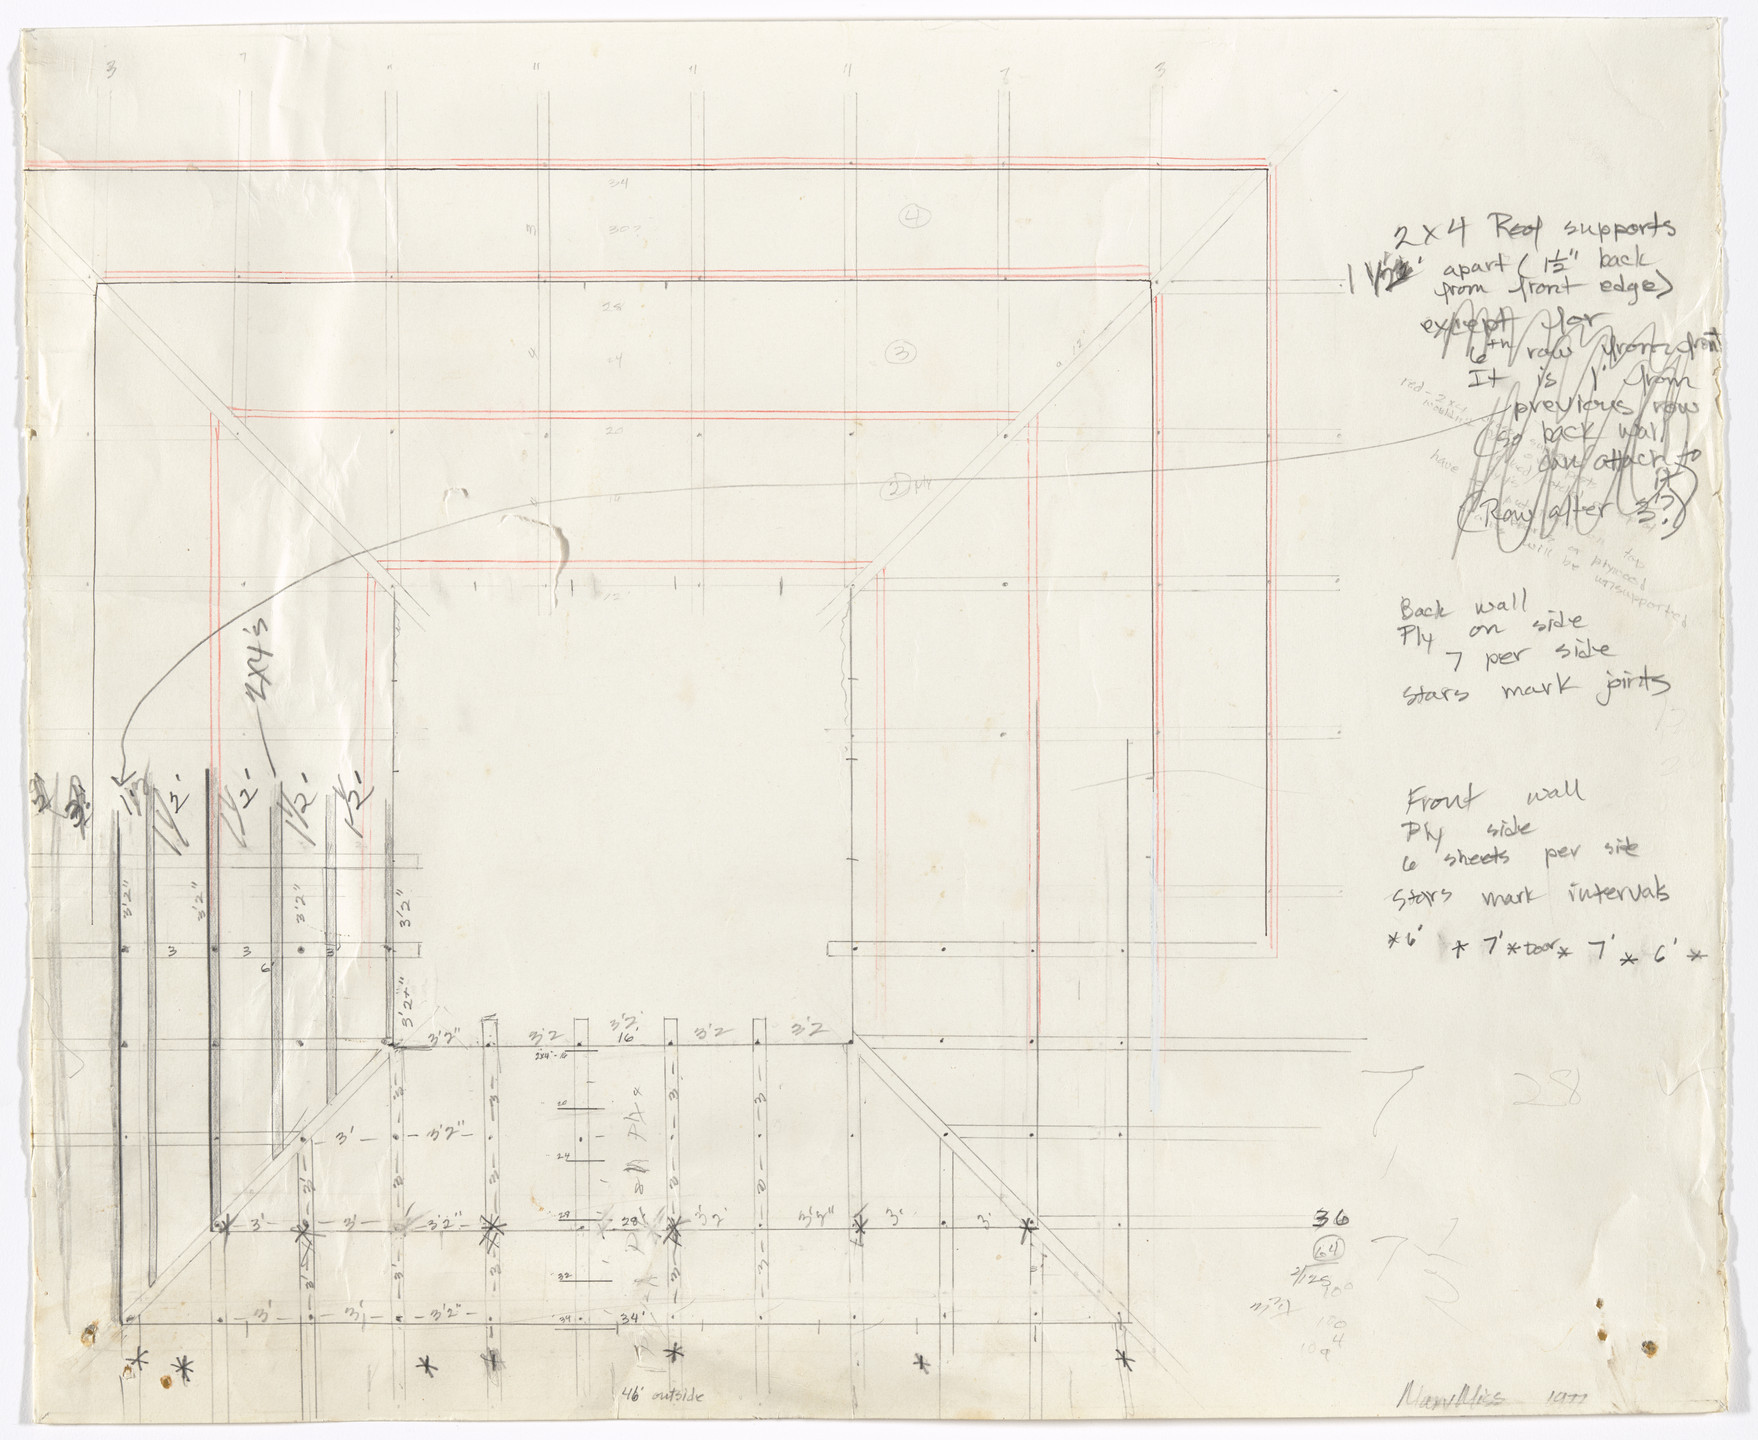 Mary Miss. Study for Tower in Perimeters/Pavilions/Decoys. 1977